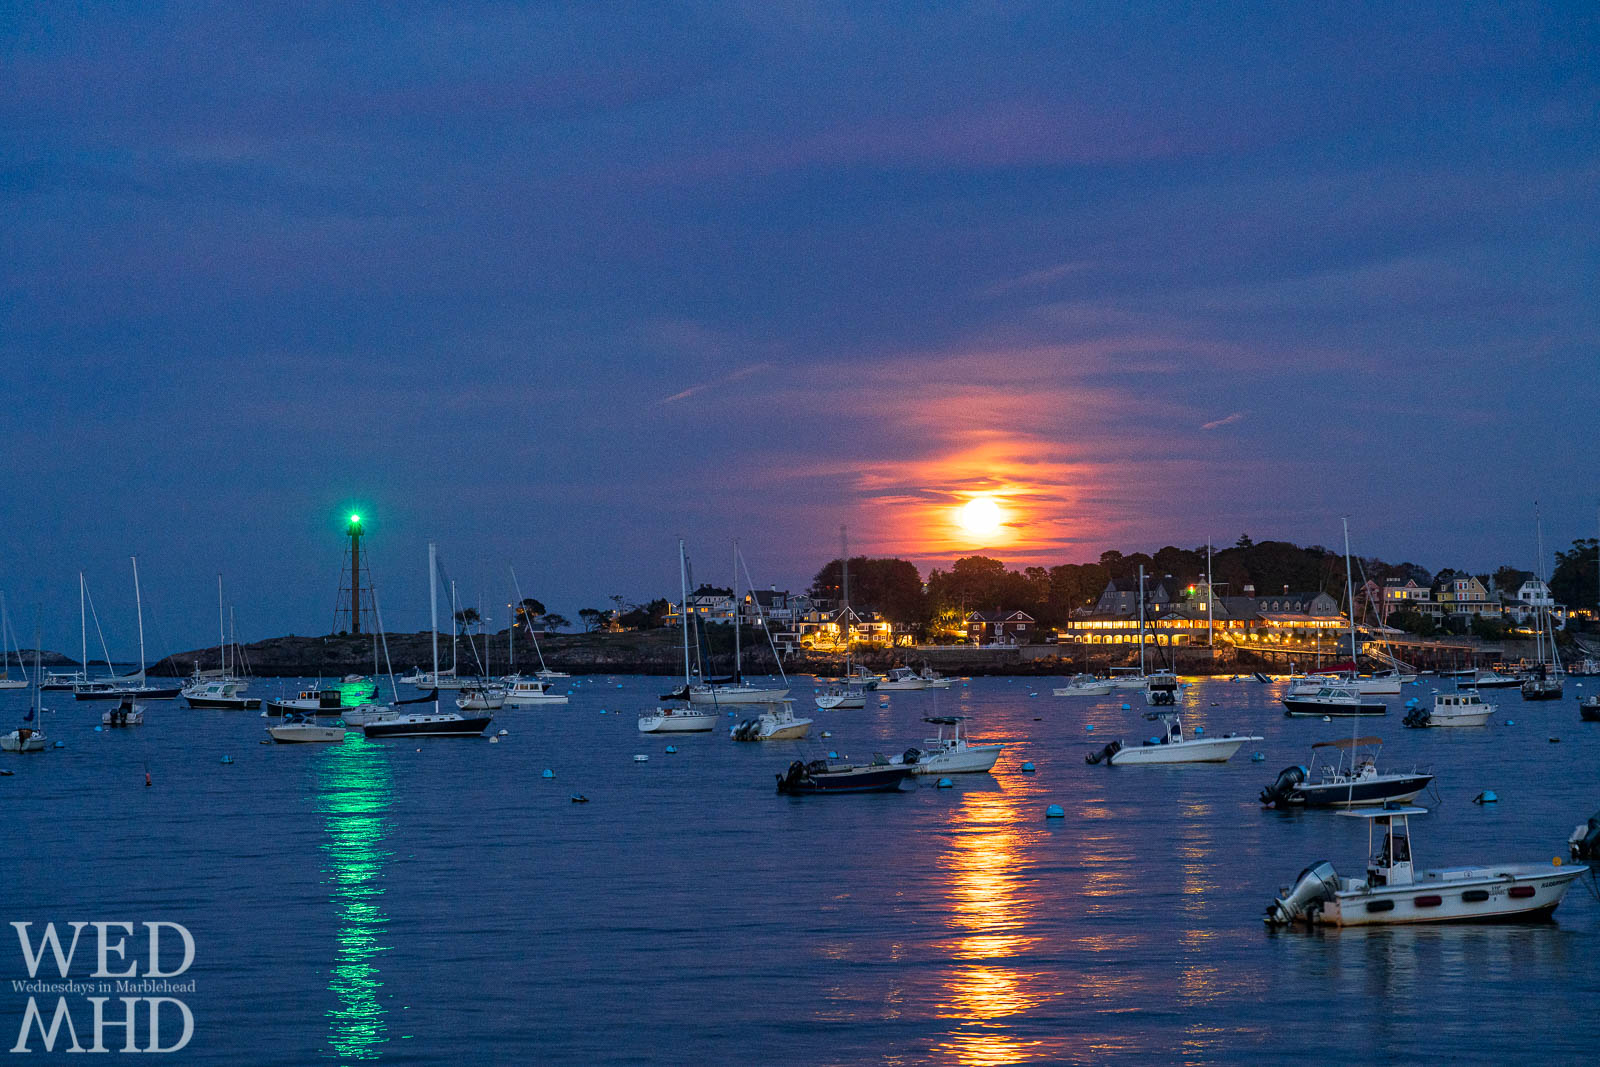 The Hunters moon rises over Marblehead Neck between the lighthouse and Corinthian Yacht Club on a mid-October evening